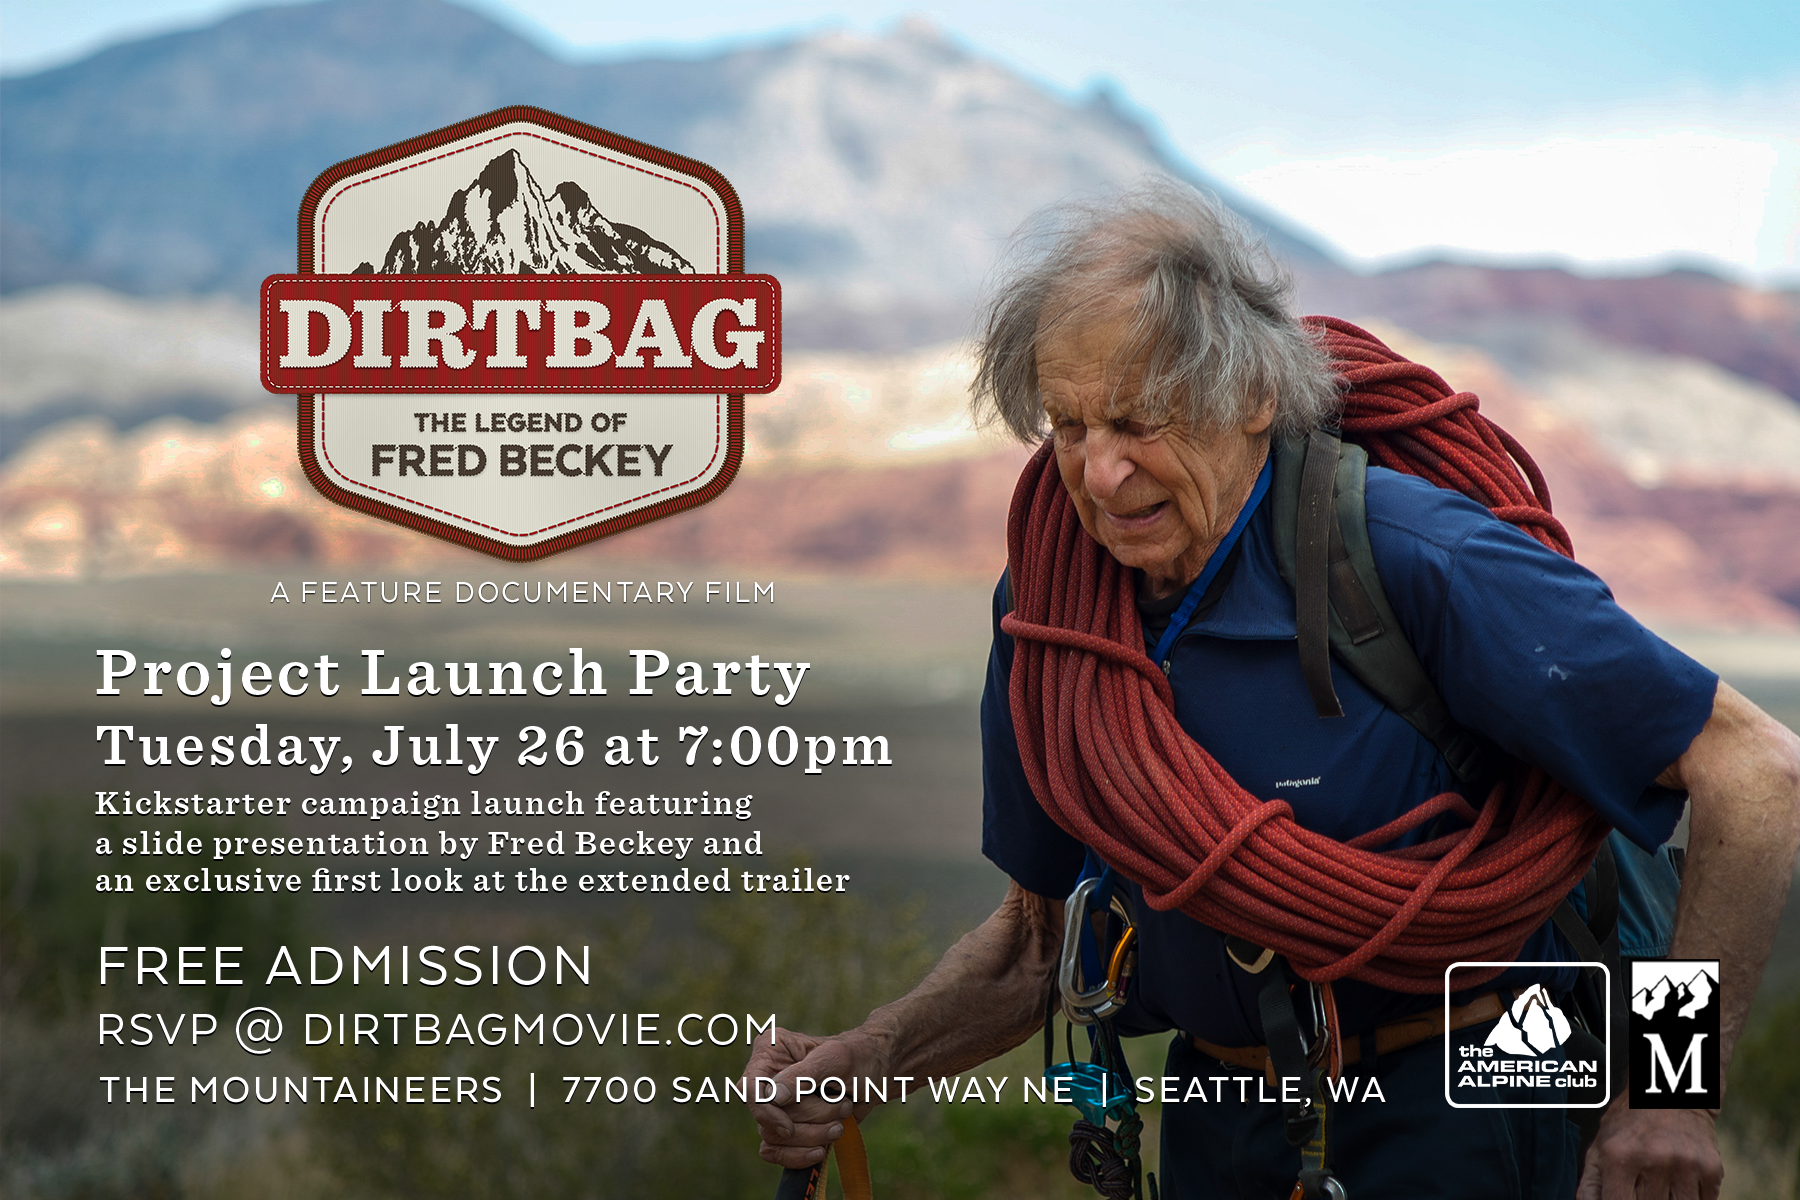 Event Flyer - DIRTBAG Project Launch